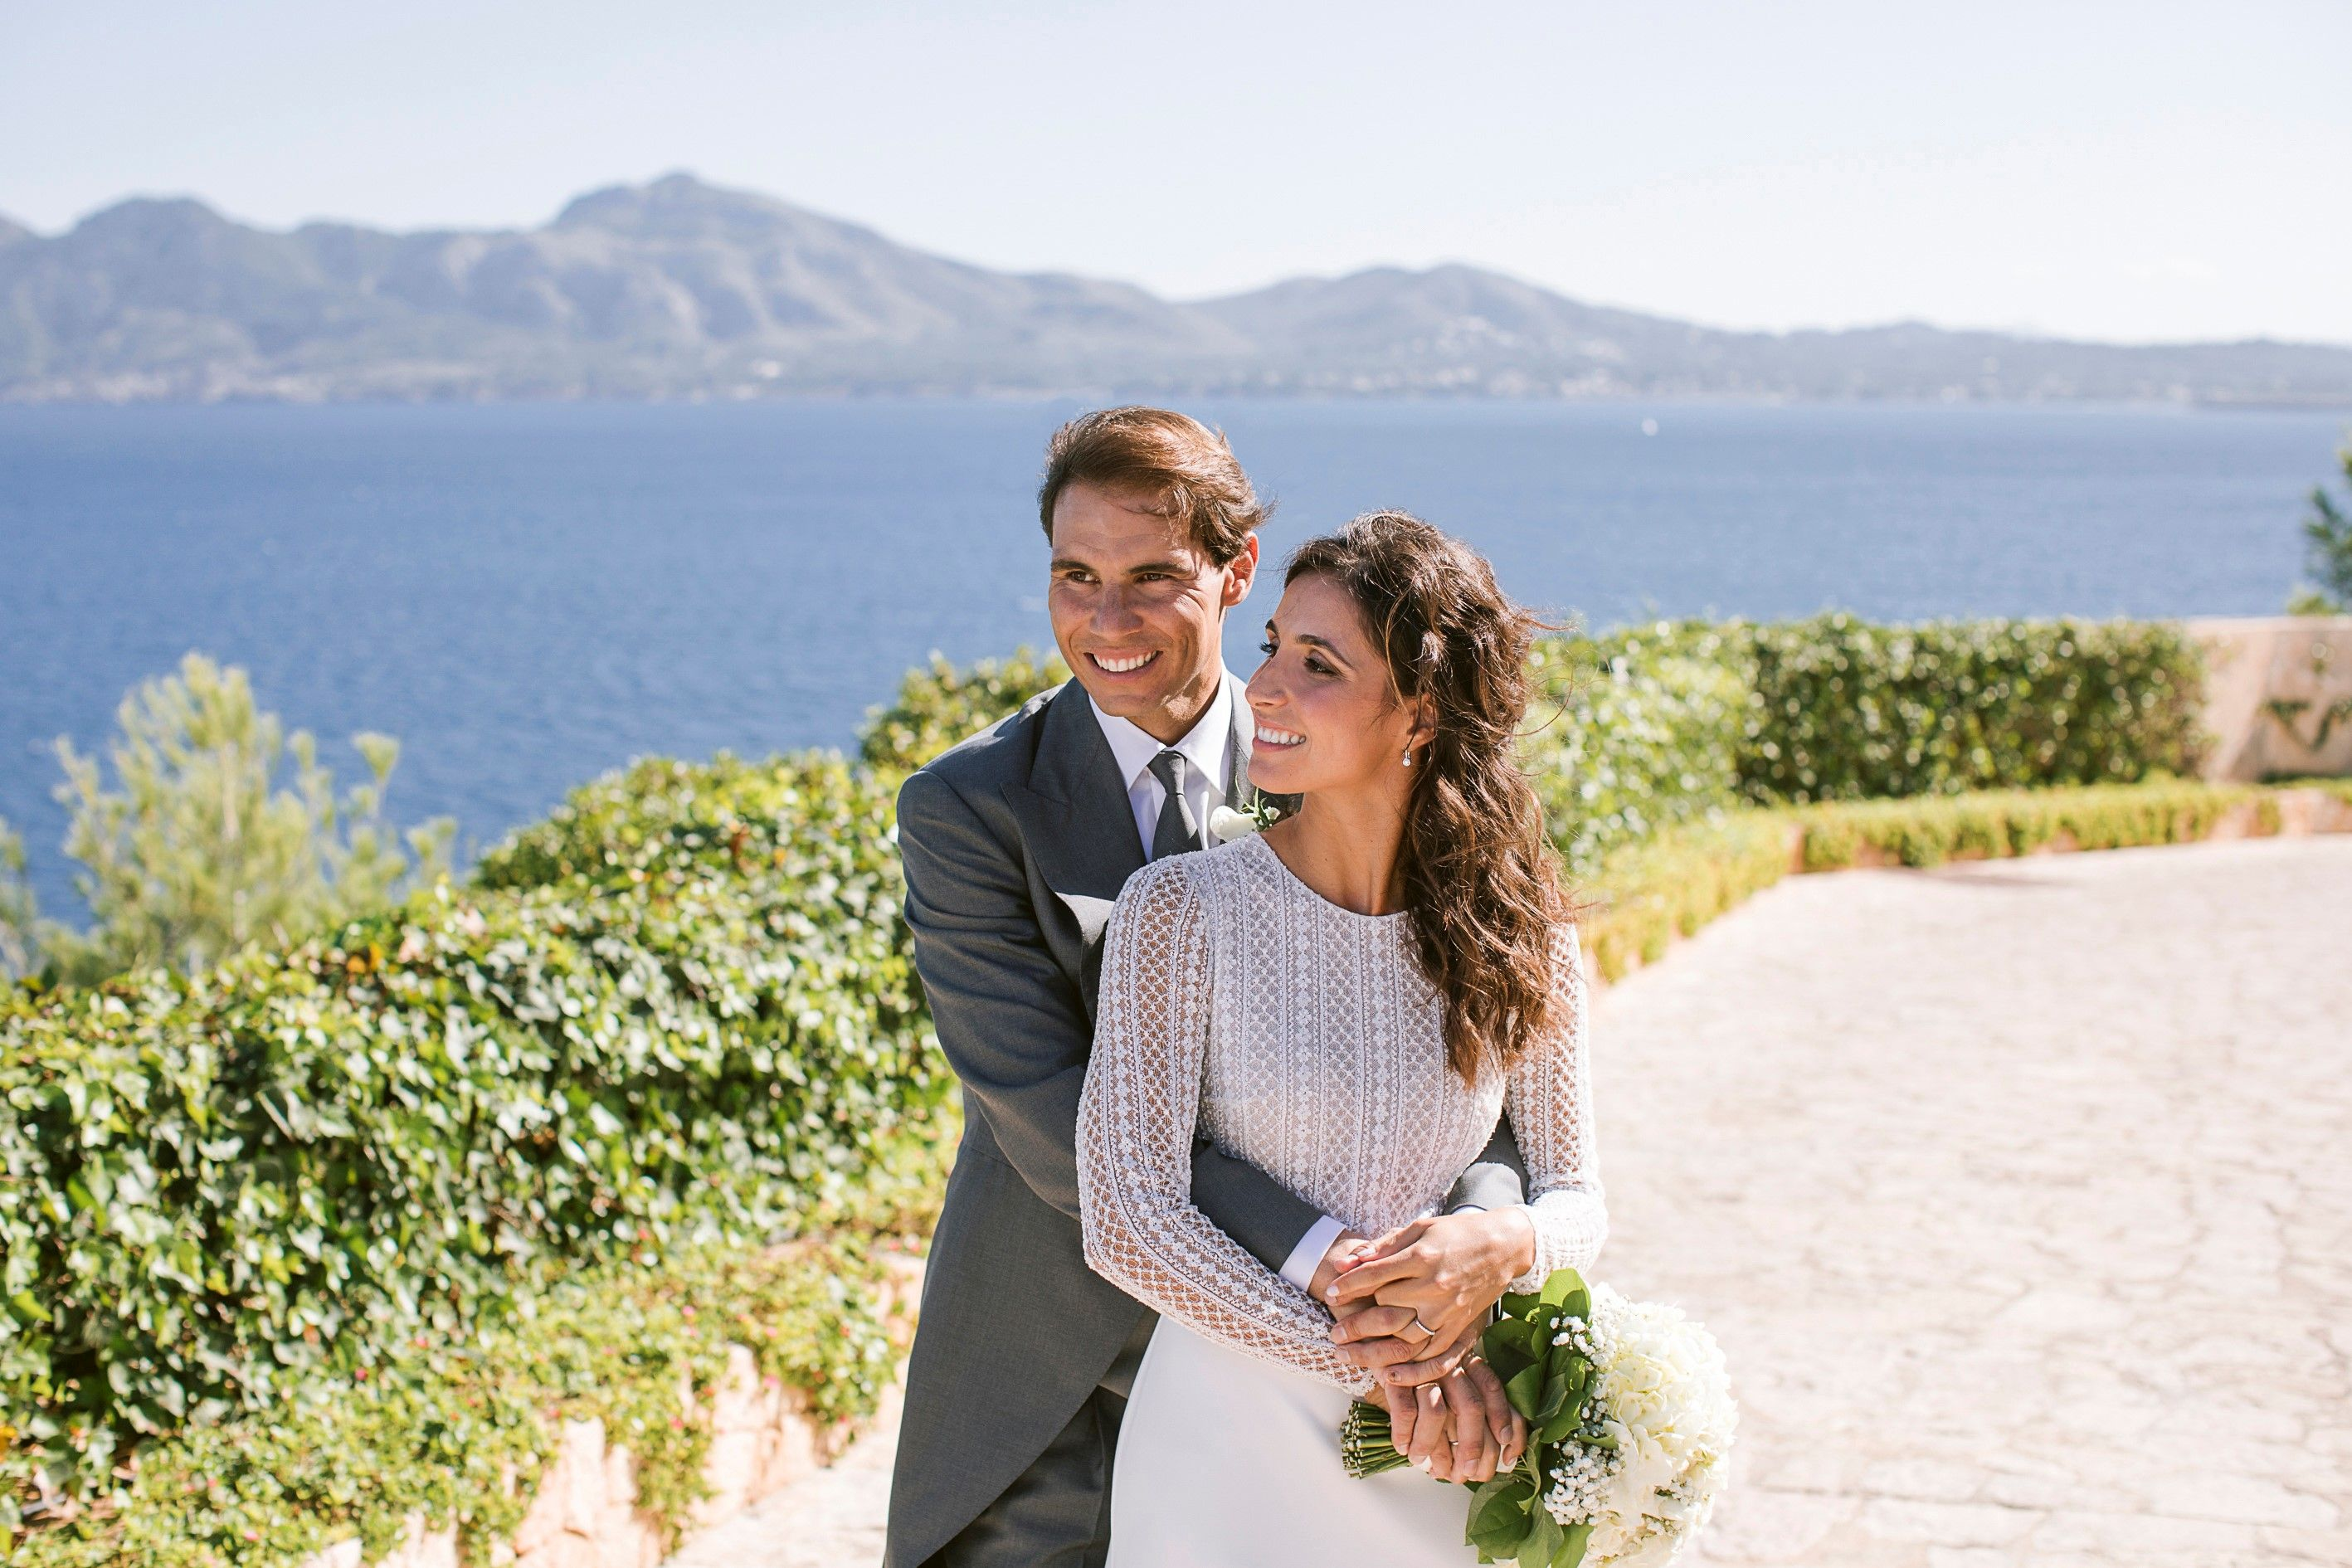 Rafael Nadal Mery Xisca Perello S Wedding Details Including The Dress Venue